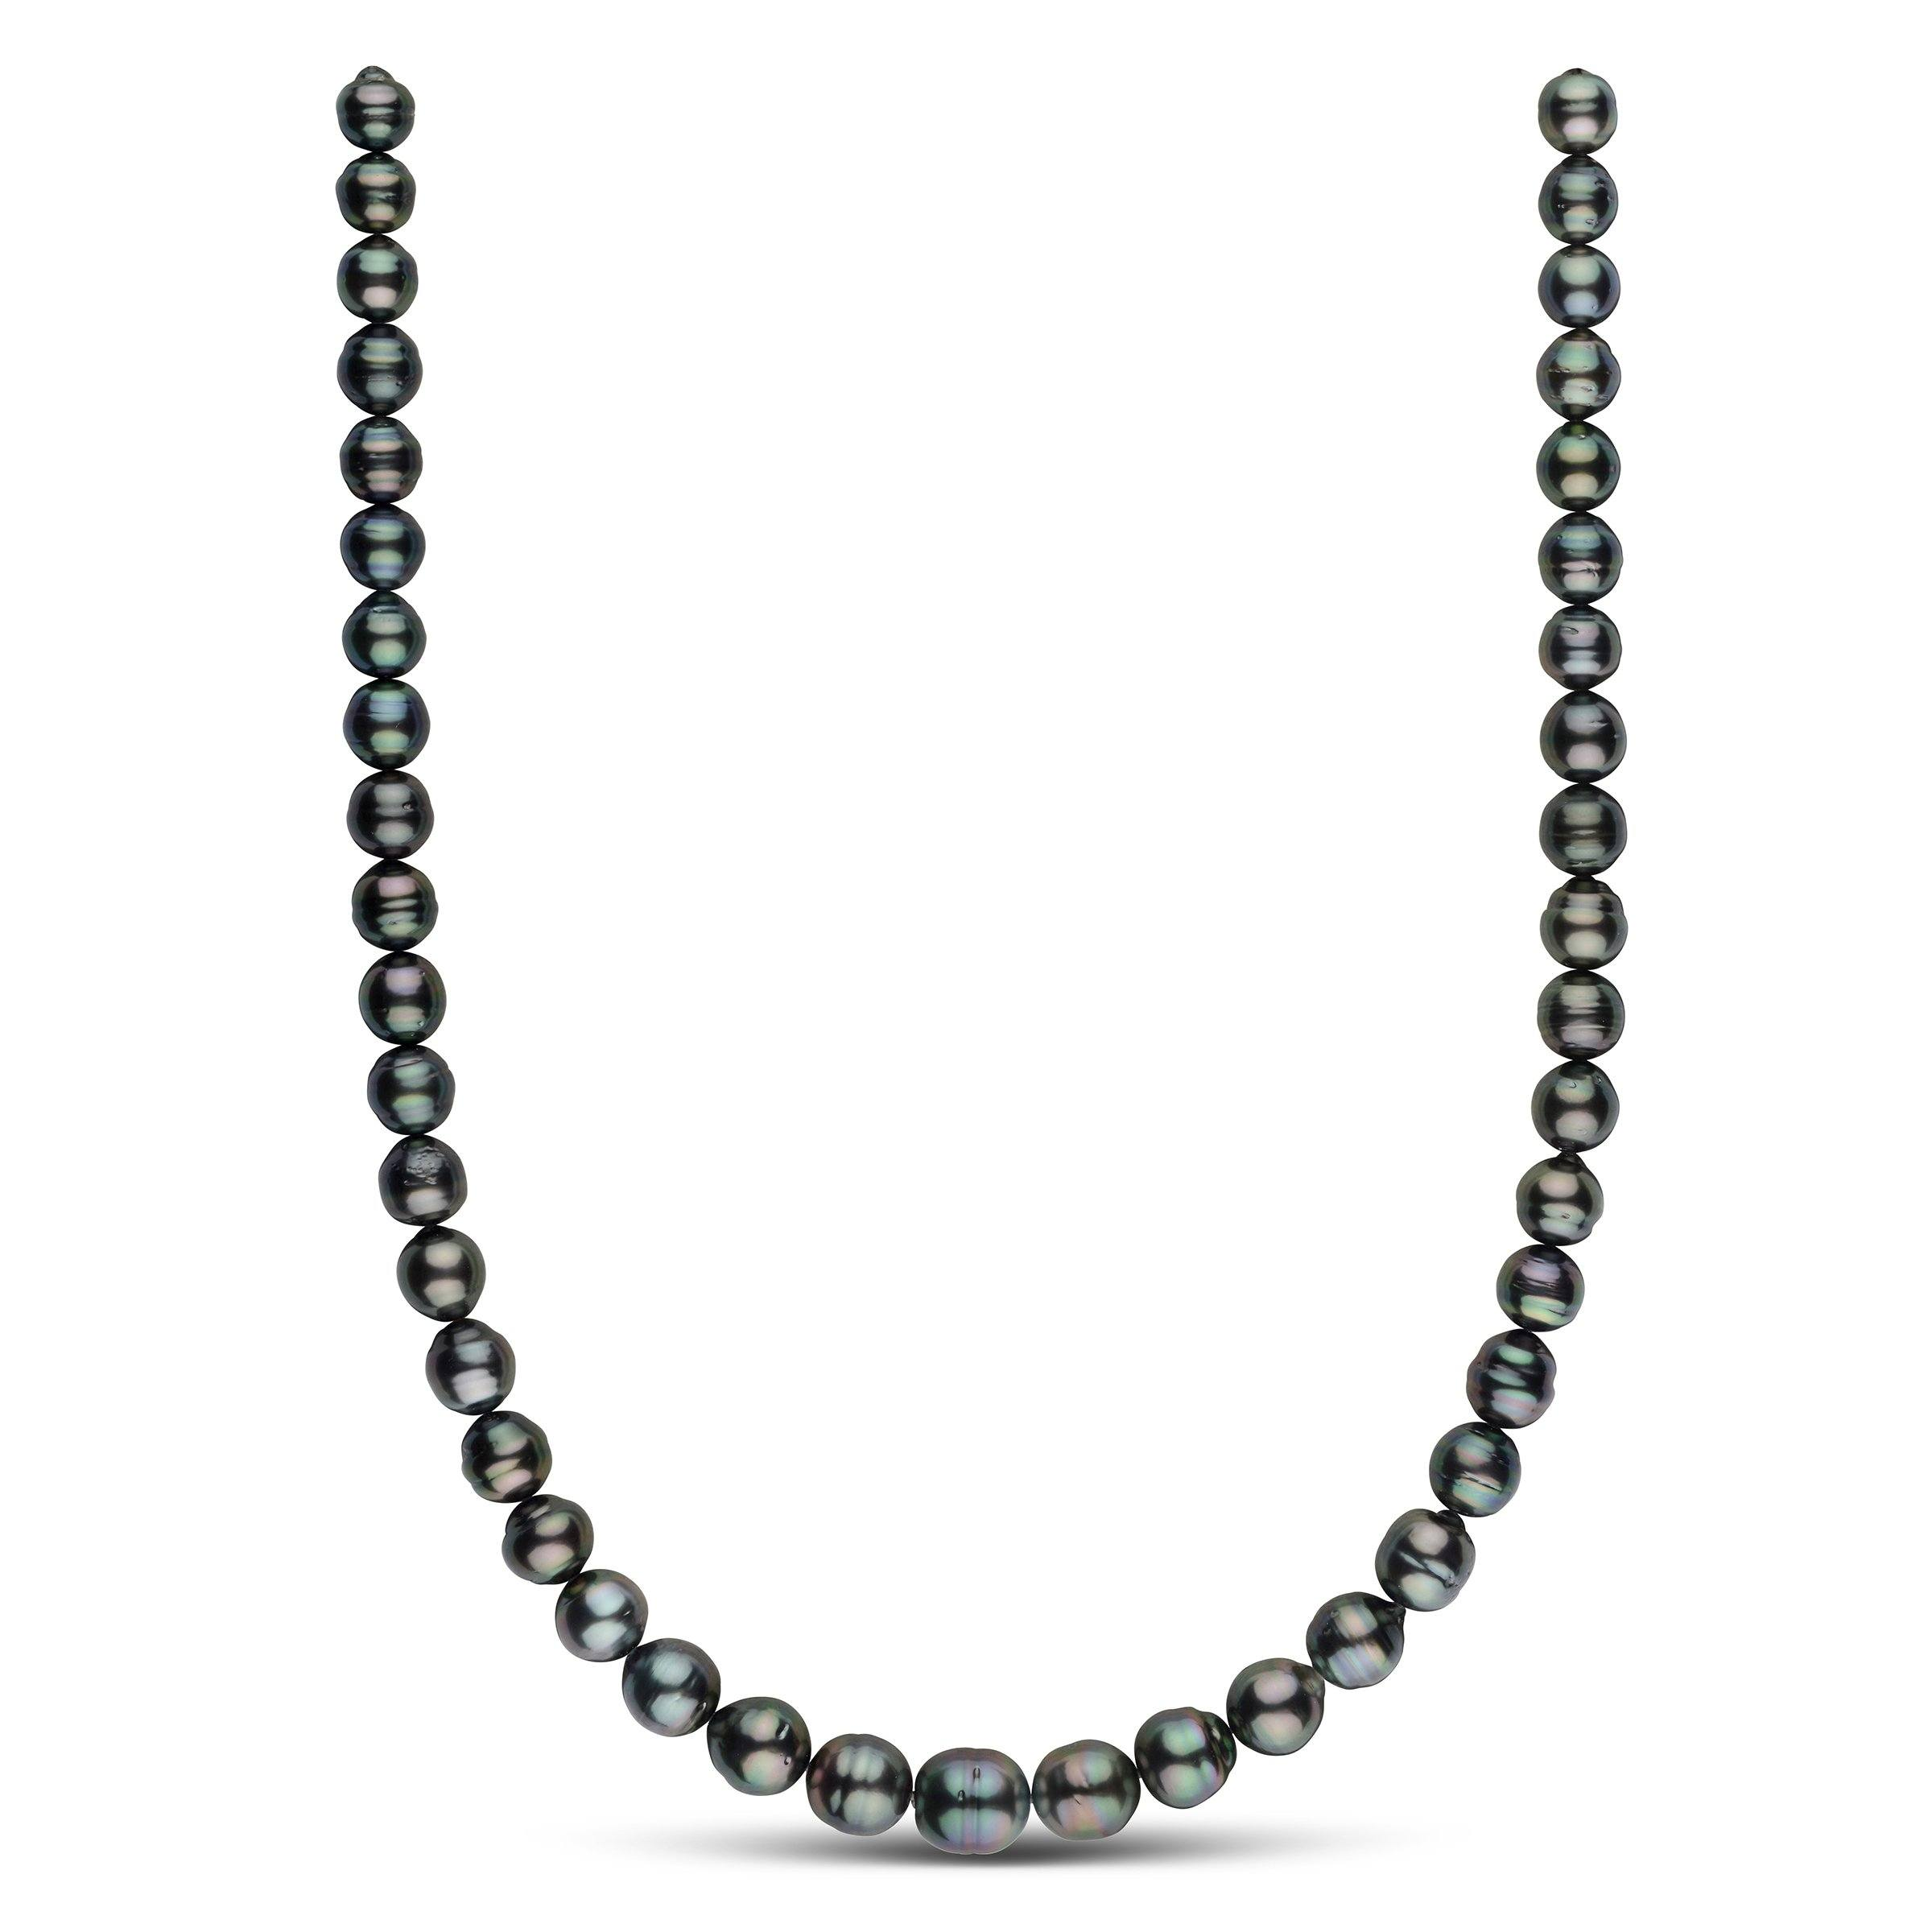 8.1-10.8 mm AA+/AAA Tahitian Baroque Pearl Necklace